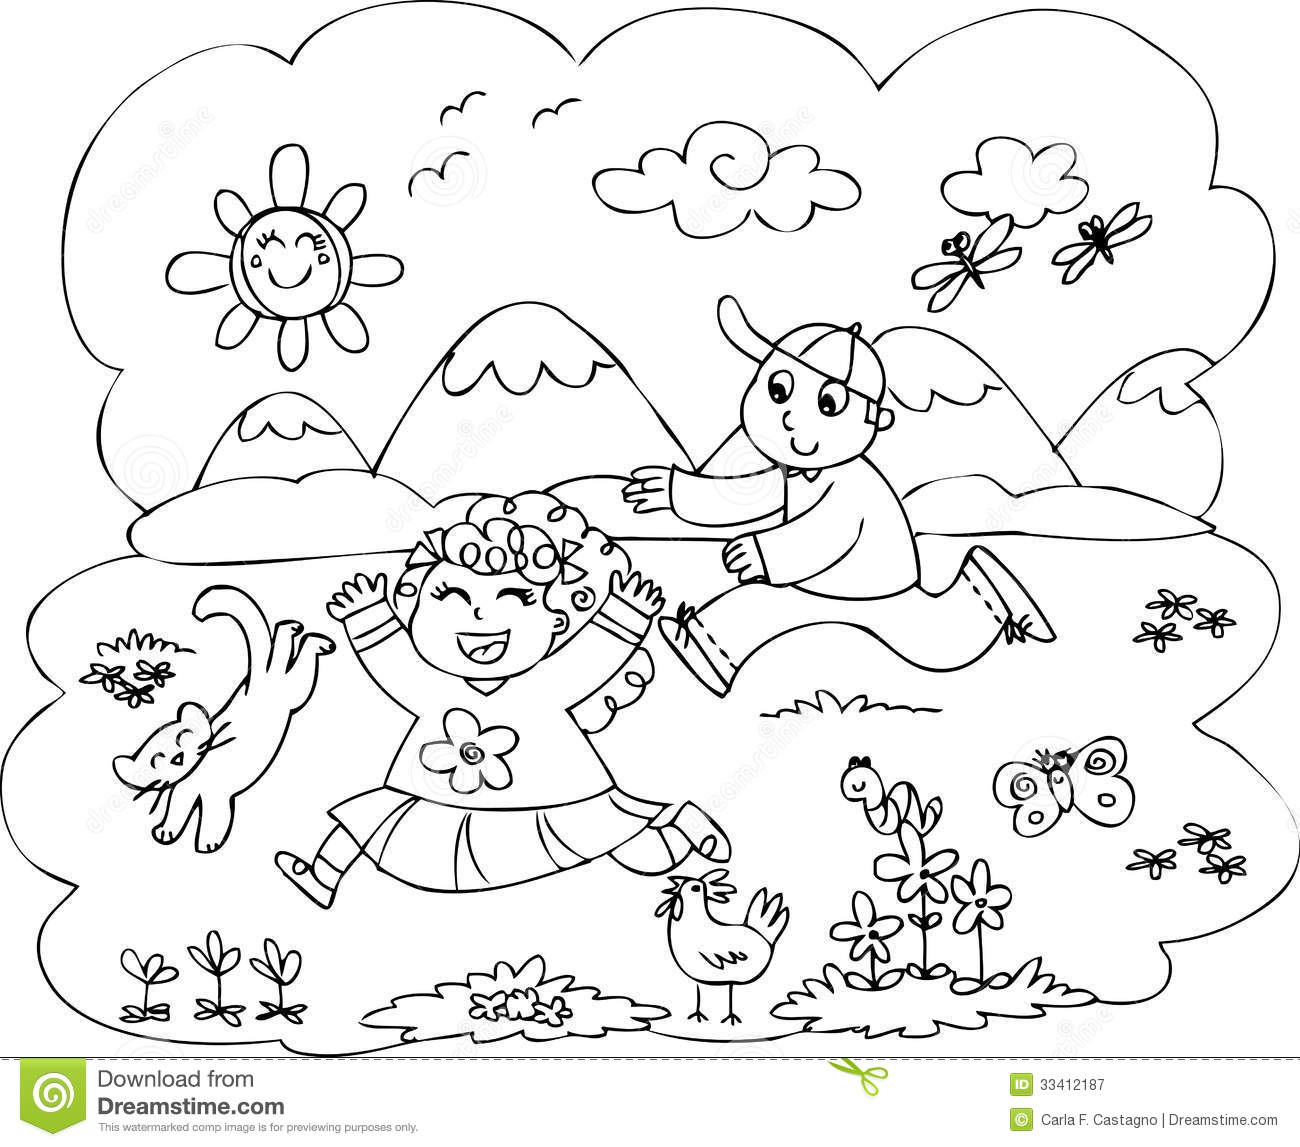 Coloring Pages Kids Playing Coloring Pages children playing coloring pages eassume com for kids